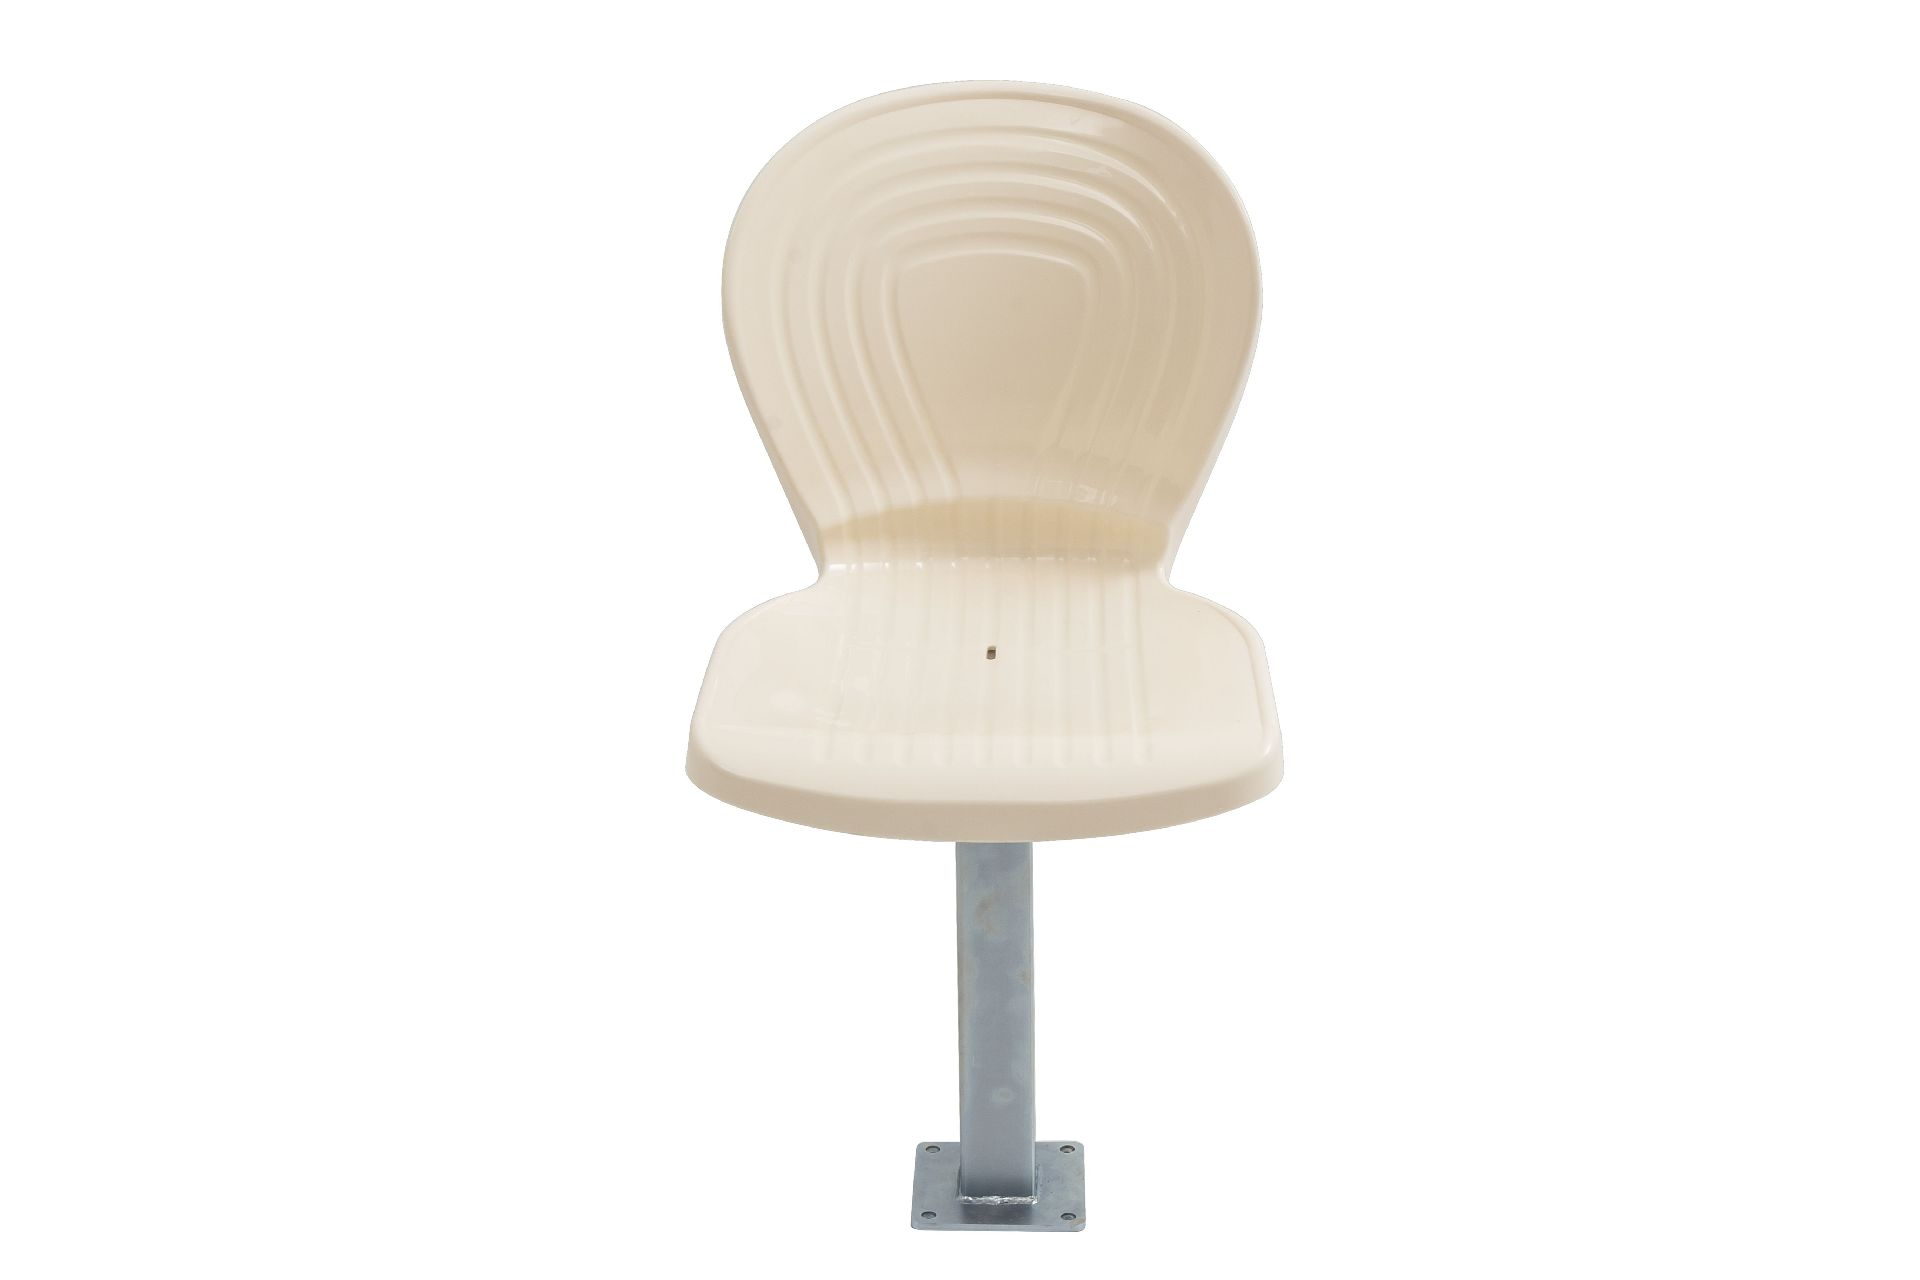 mine_backrest_monoblock_copolymer_pp_stadium_chair_seatorium_10